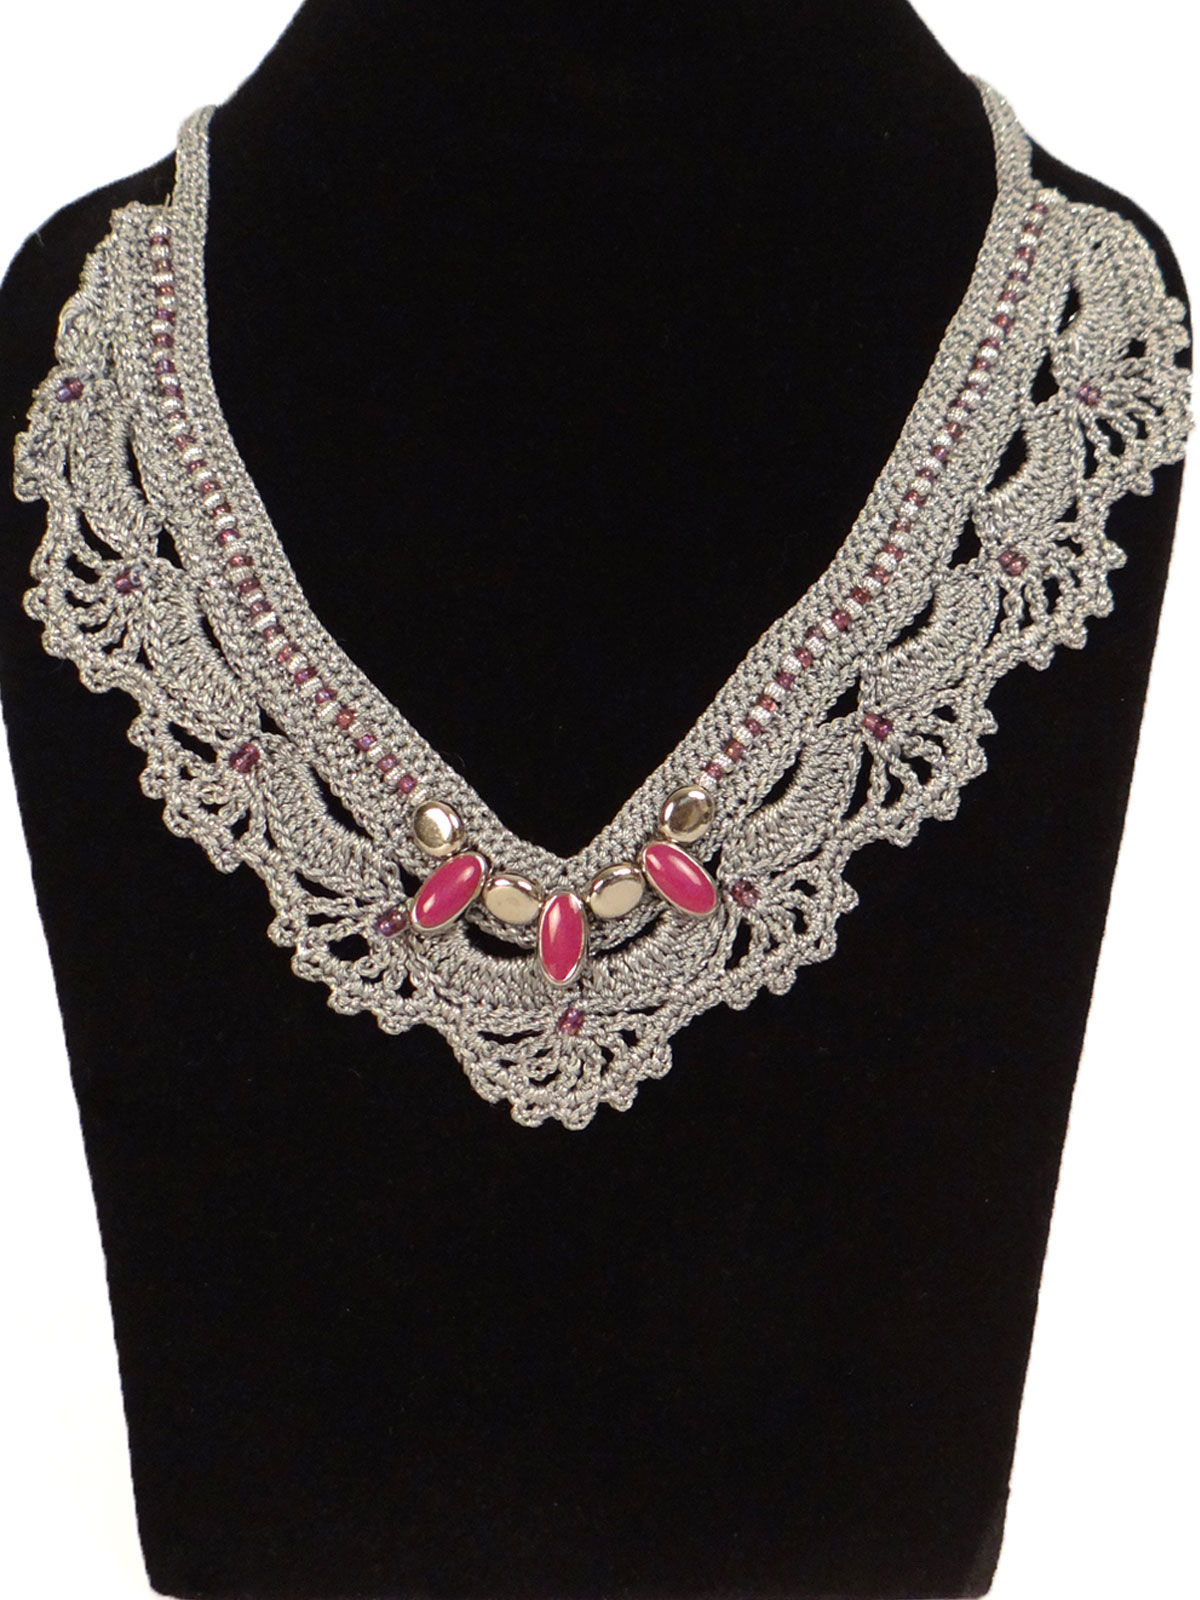 Silver crochet fabric necklace with pink pearl beads